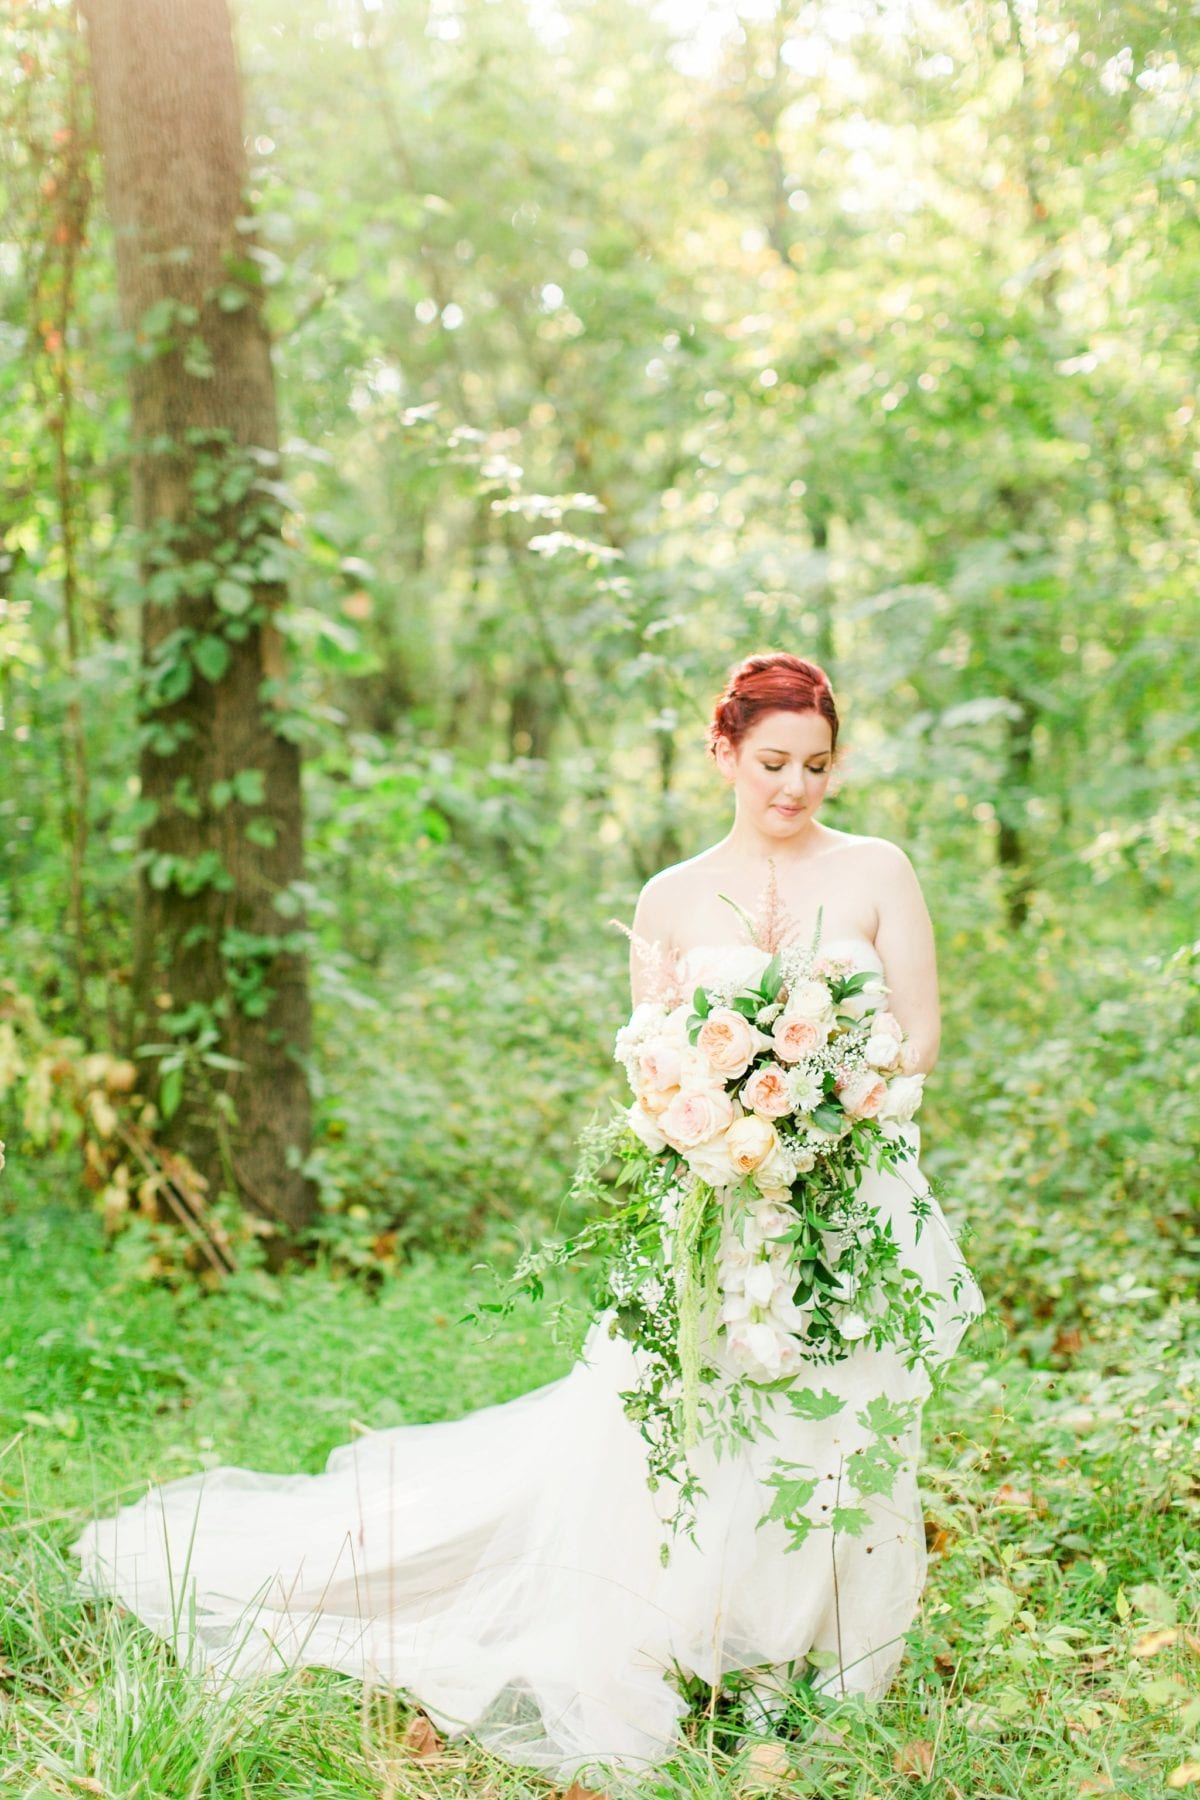 Rocklands Farm Wedding Virginia Wedding Photographer Megan Kelsey Photography Jessica & Jason-75.jpg